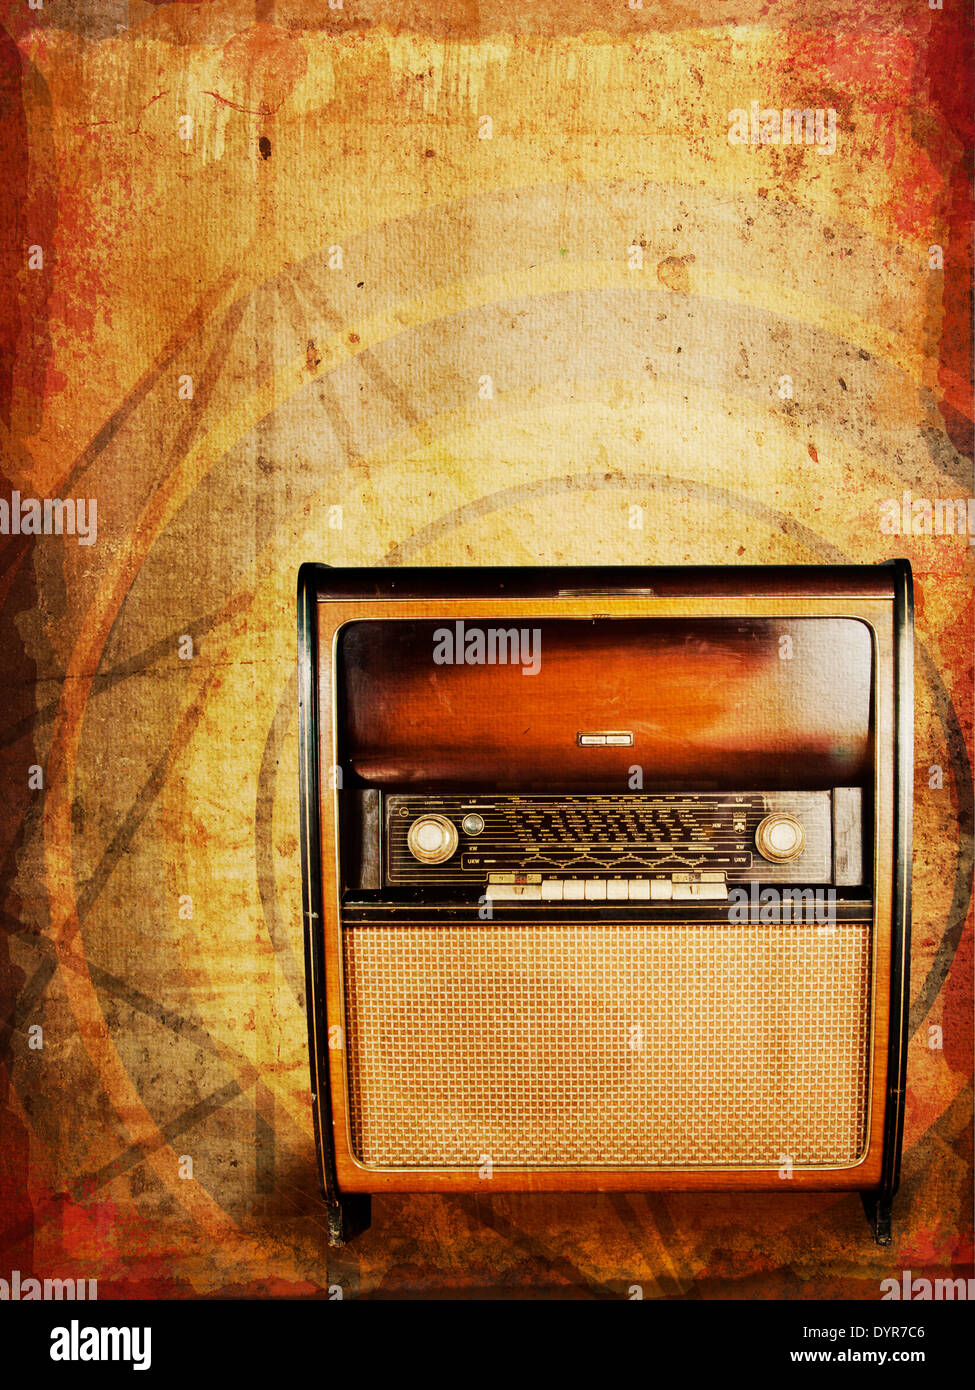 Old vintage radio, an original from the 1950s, against distressed abstract background. - Stock Image